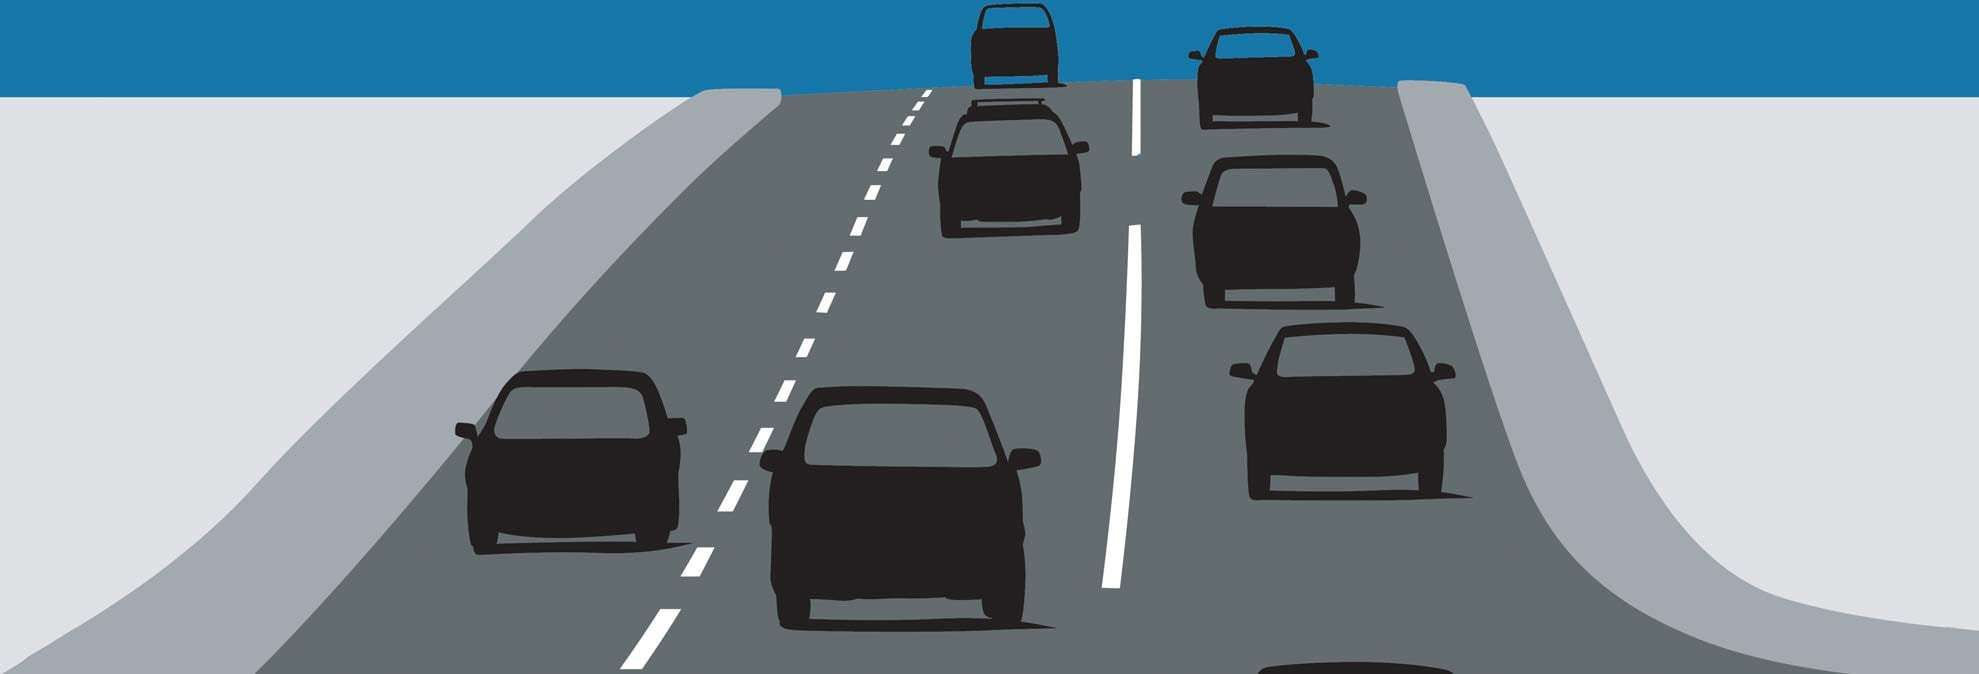 Research Shows Lane Departure Warnings Prevent Crashes The Body